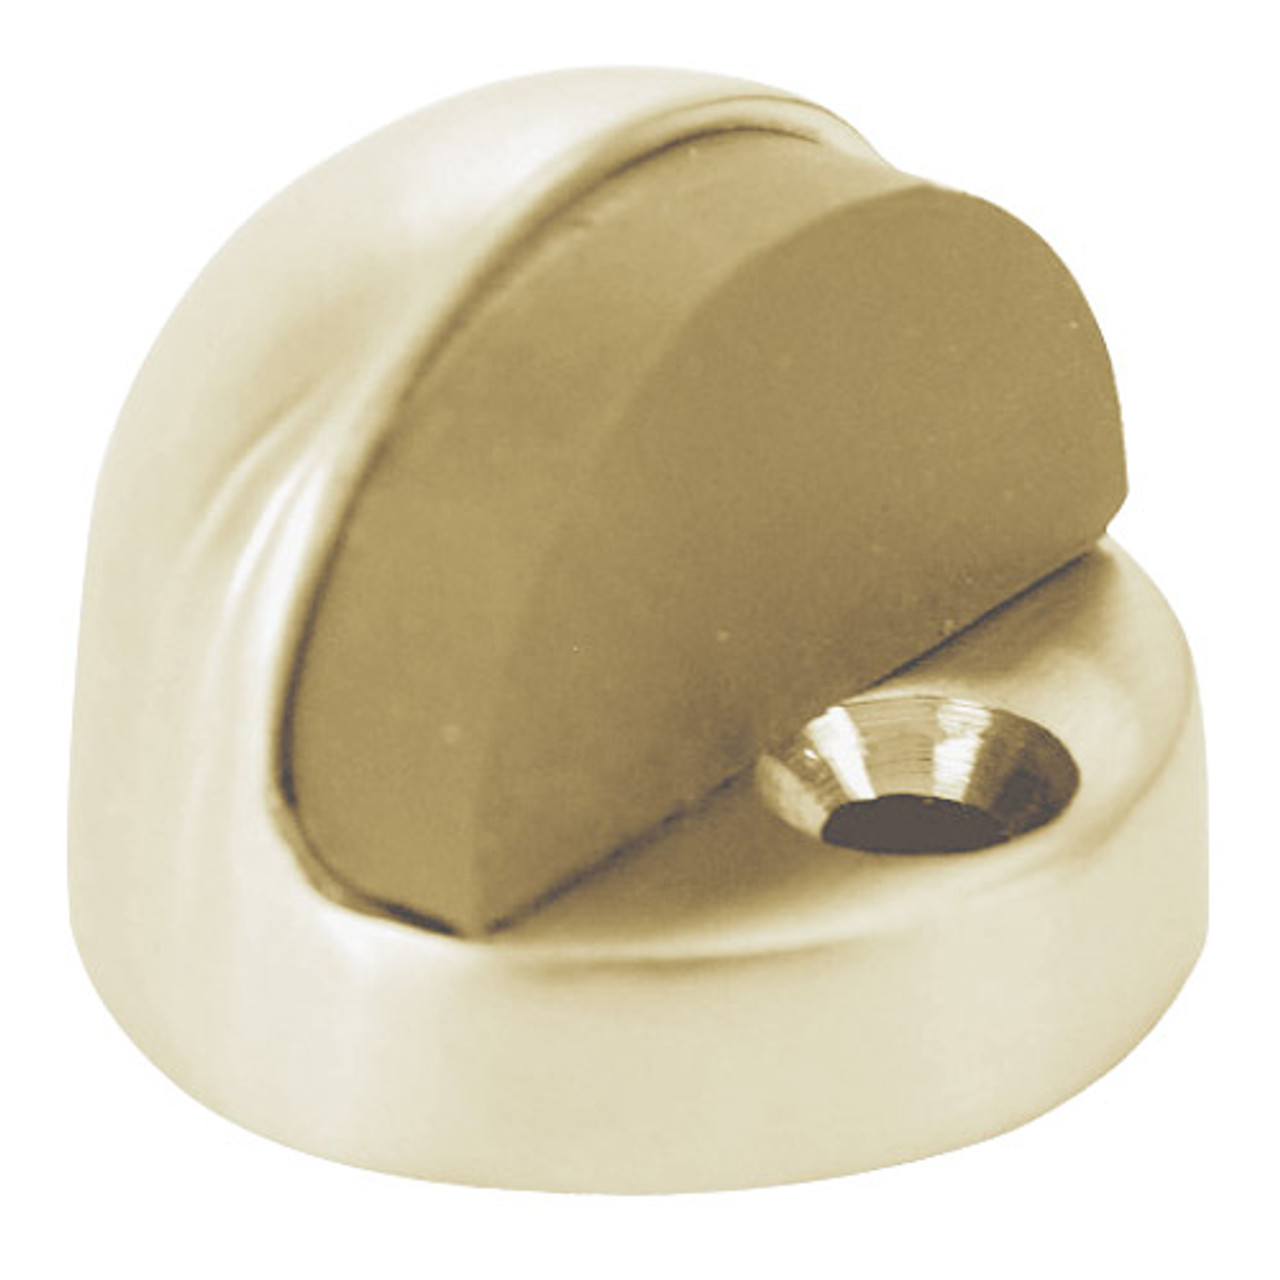 Don-Jo 1442 Cast Brass Floor Stop Polished Brass Finish Pack of 20 1442-605 3//8 x 1-3//4 Base 1-1//4 Height 3//8 x 1-3//4 Base 1-1//4 Height Pack of 20